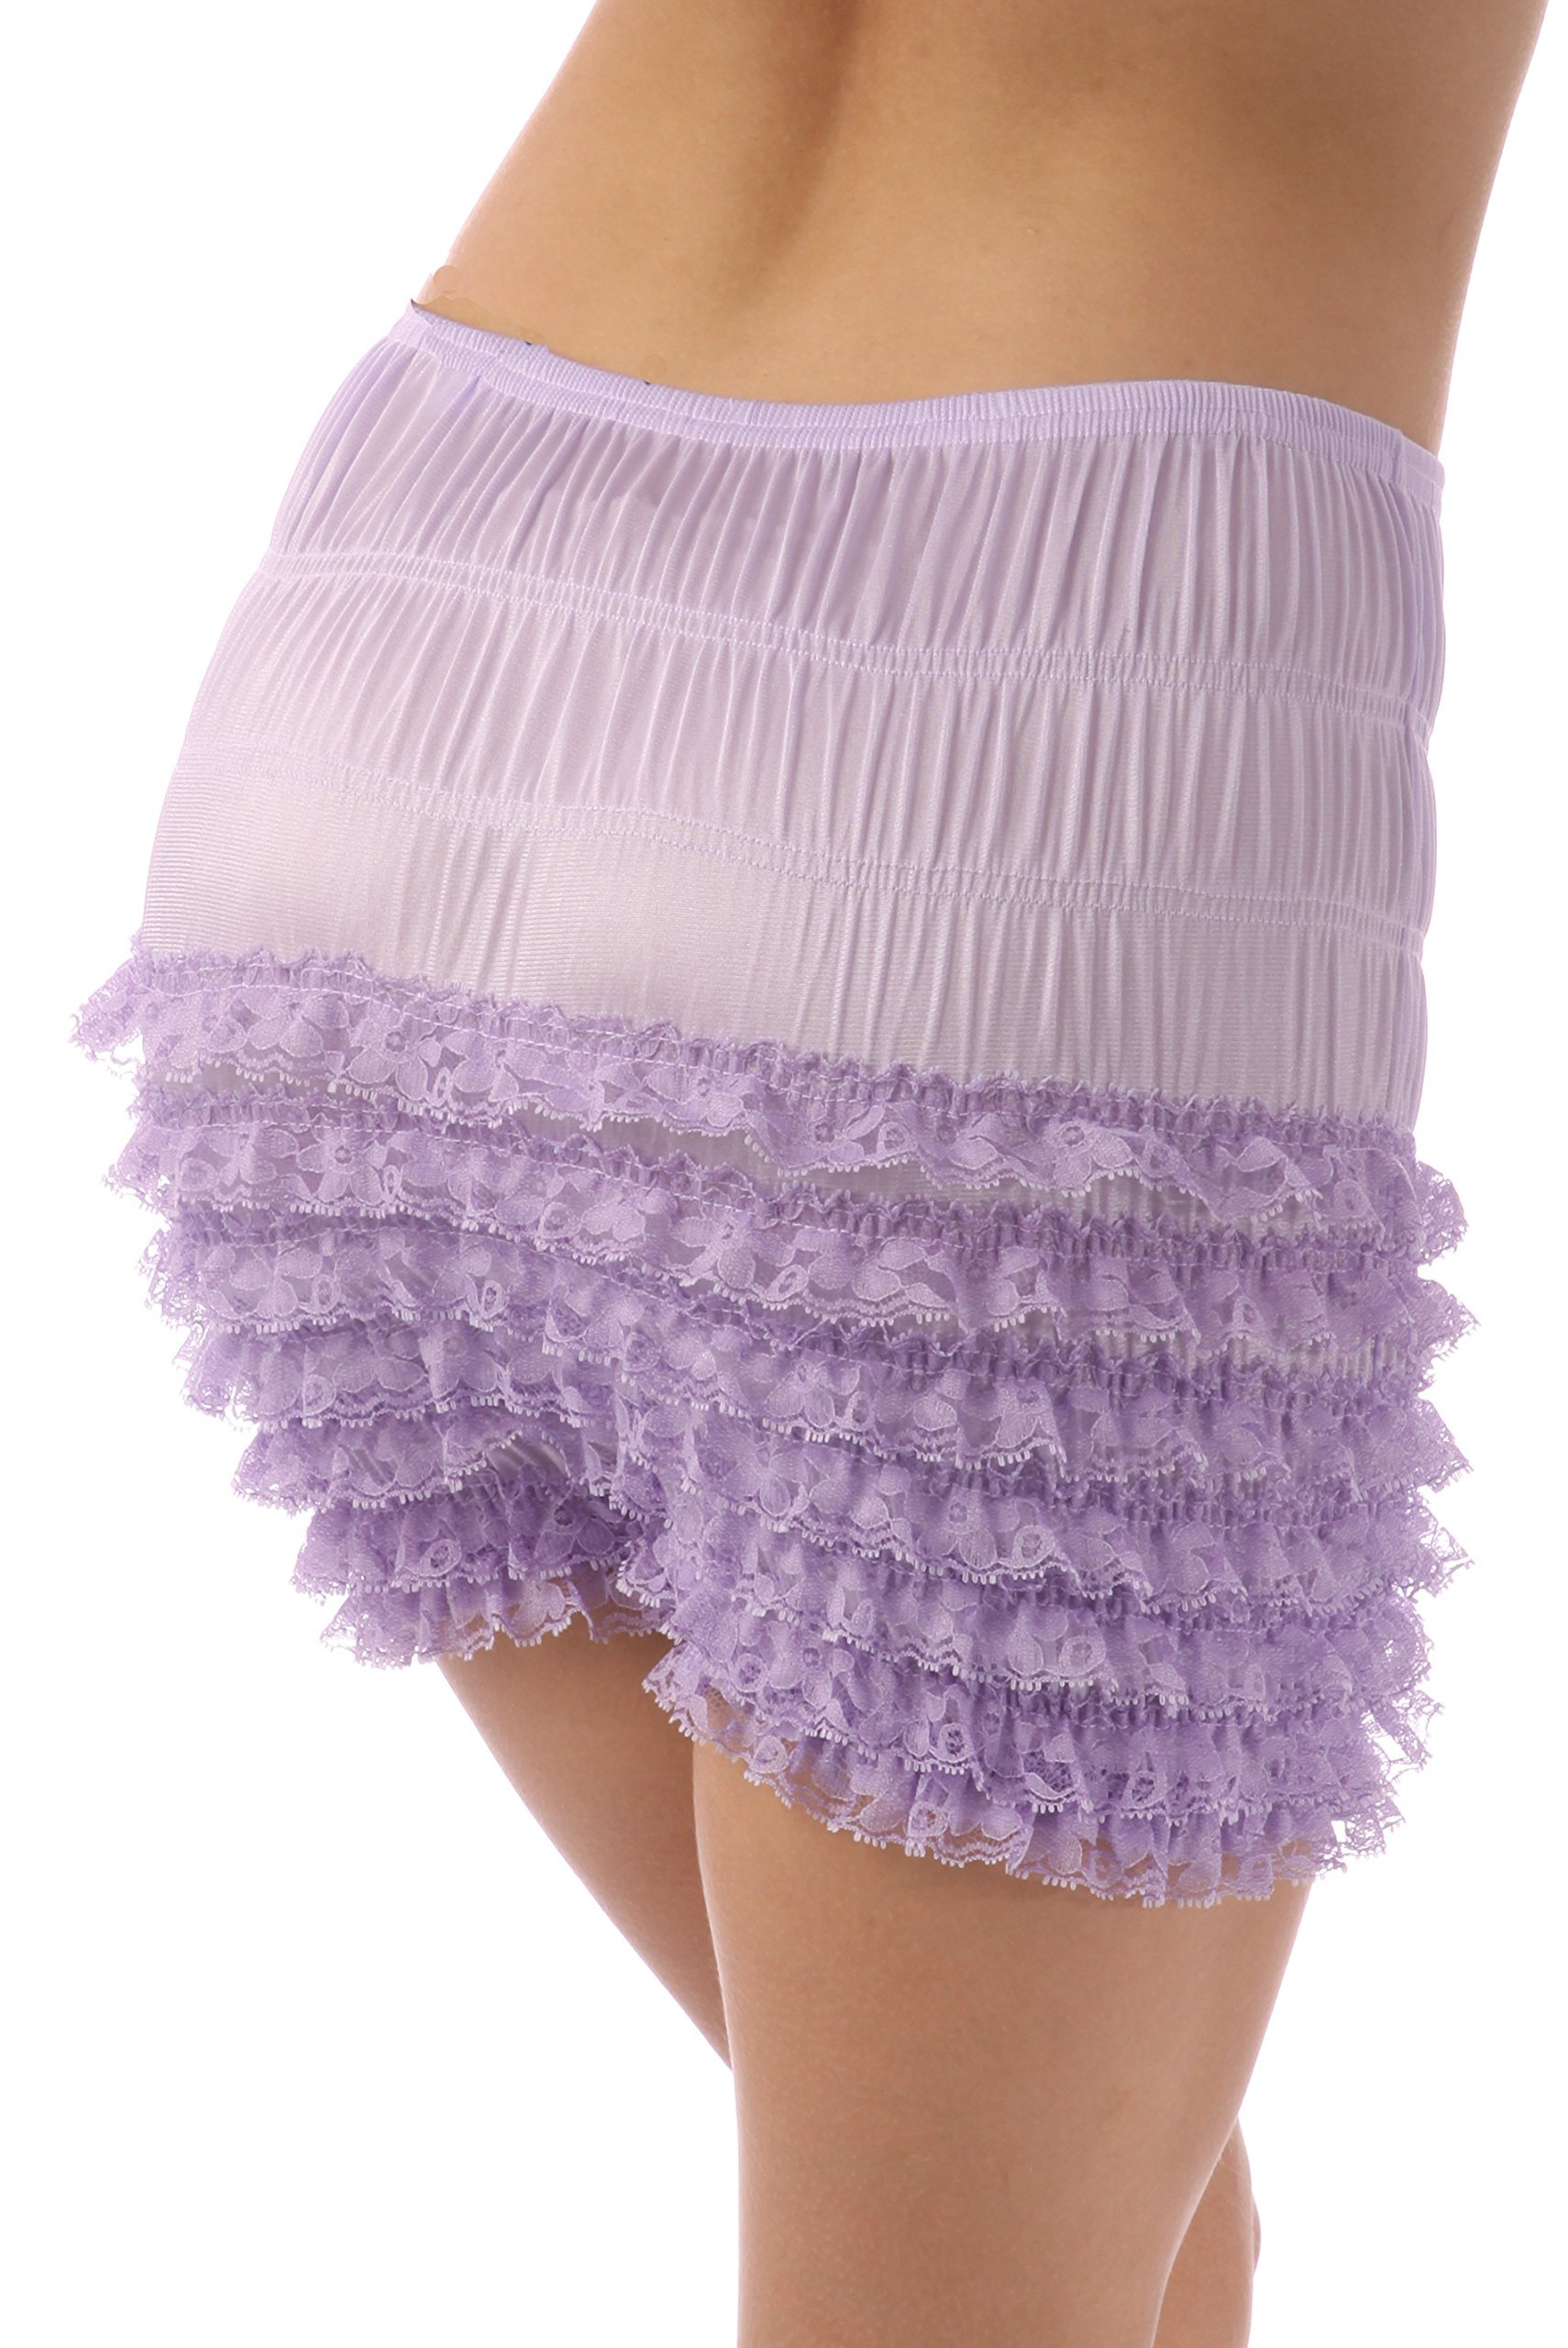 Malco Modes Womens Sexy Ruffle Panties Tanga Dance Bloomers Sissy Booty Shorts (X-Large, Lilac) by Malco Modes